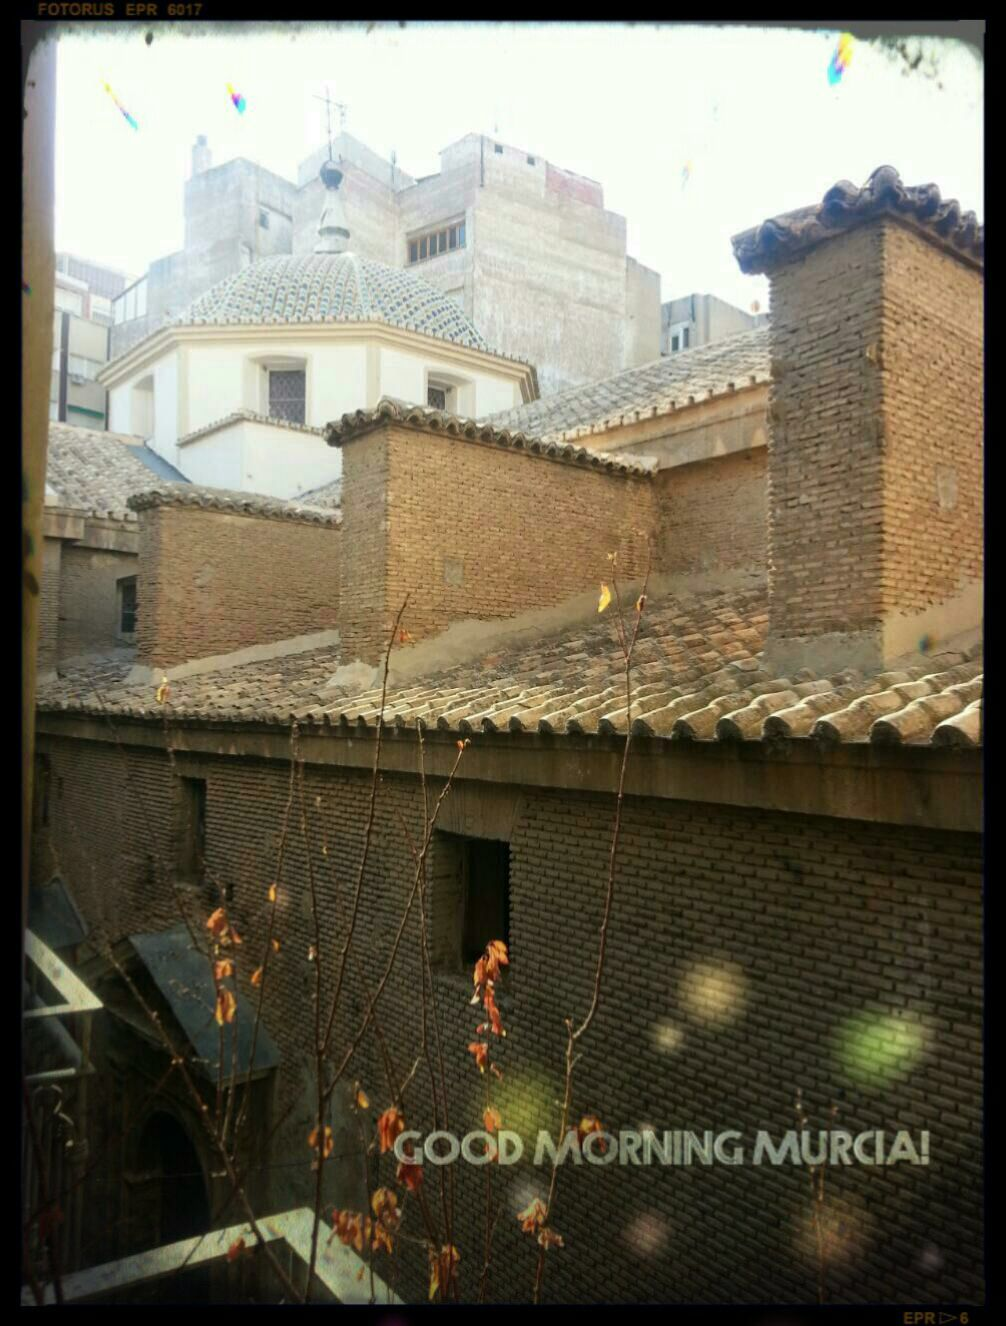 Enjoying the view from my sister 39 s place window when i wake up an 18th century jewel iglesia - Electricistas en murcia ...